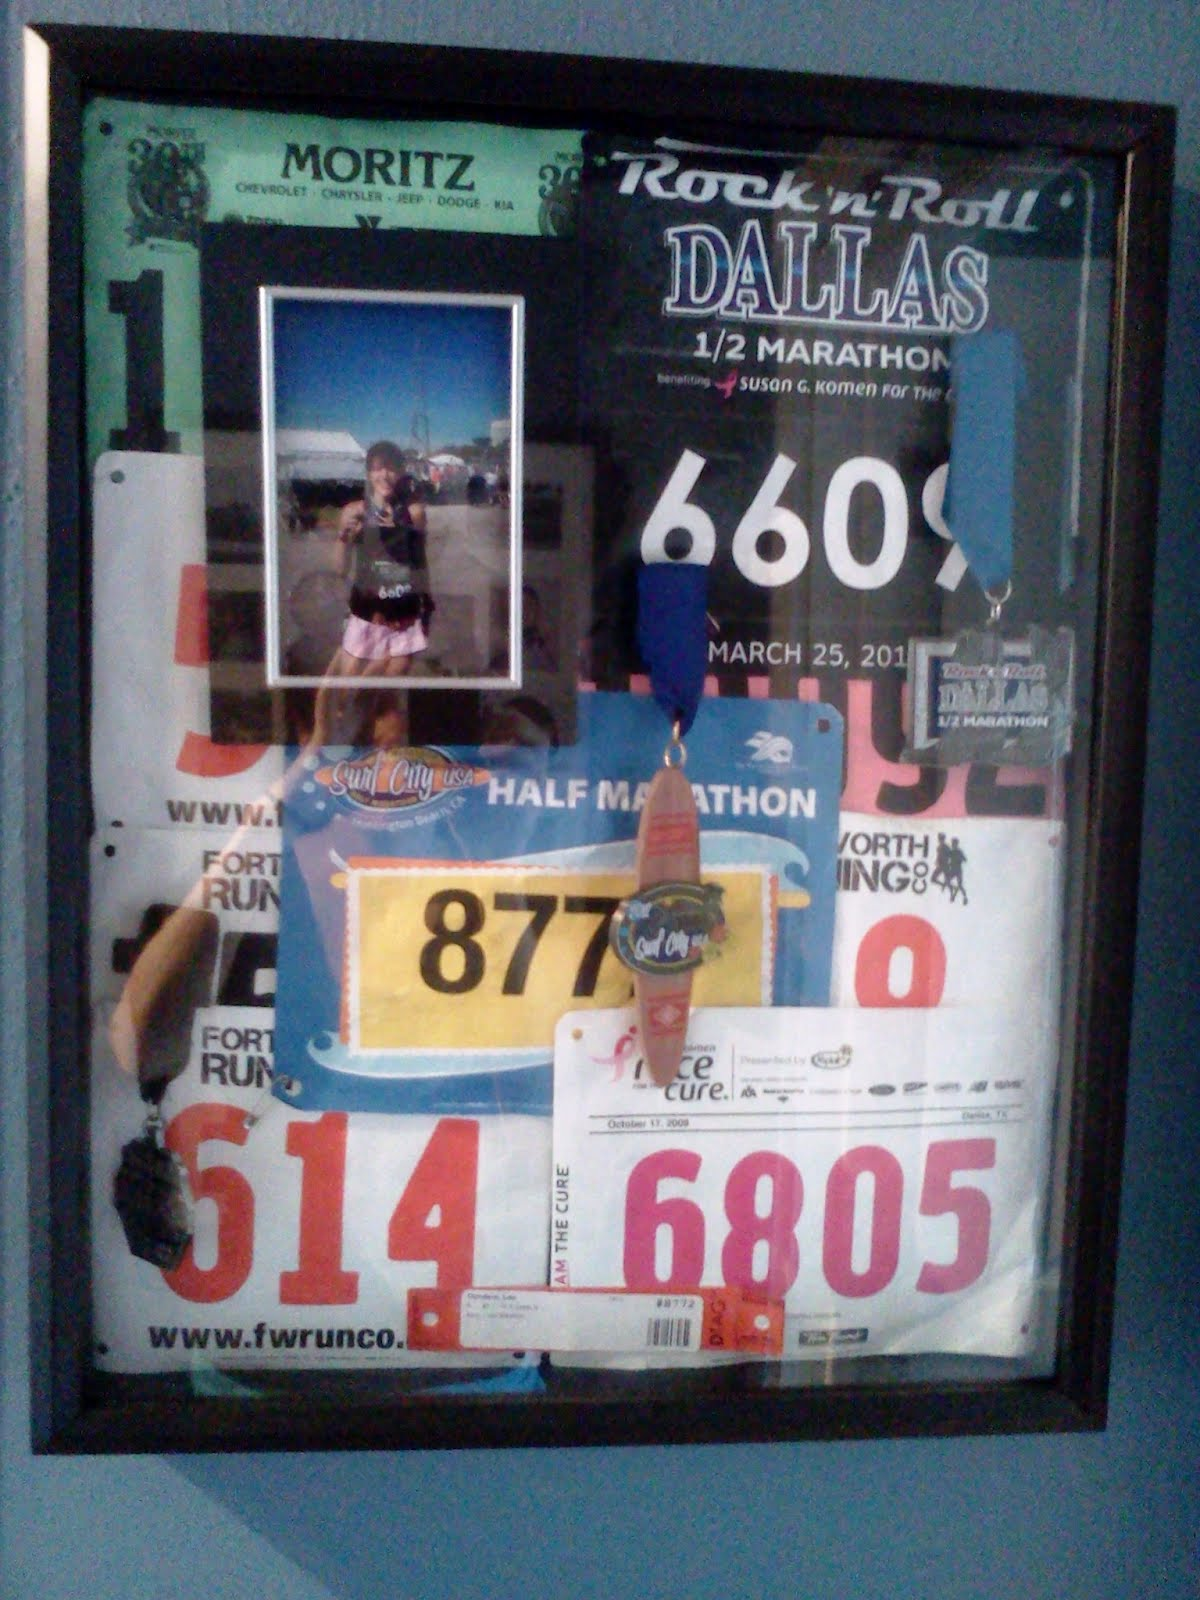 Race Medal Shadow Box Box With my New Race Medal